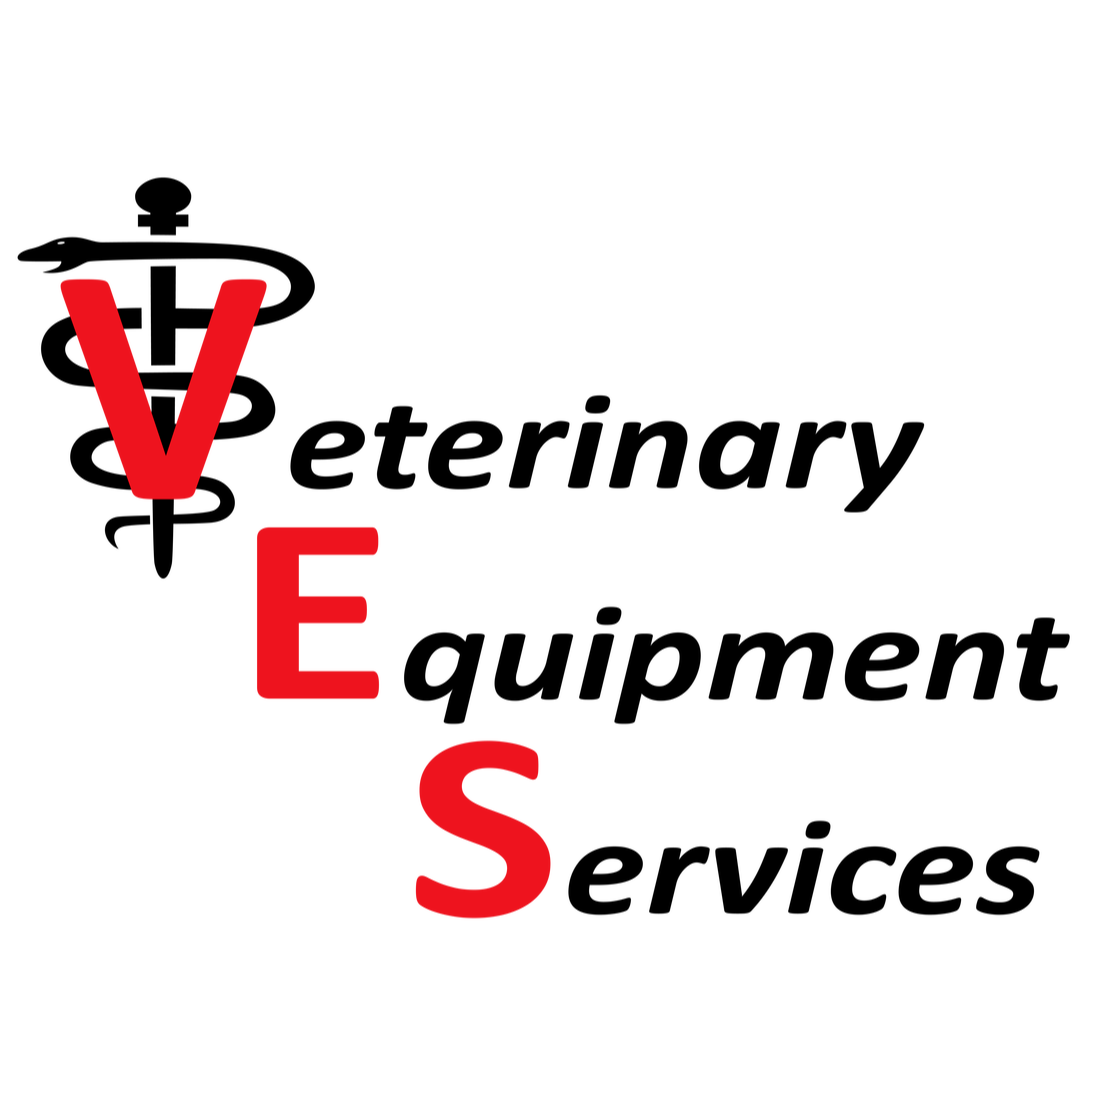 Veterinary Equipment Services